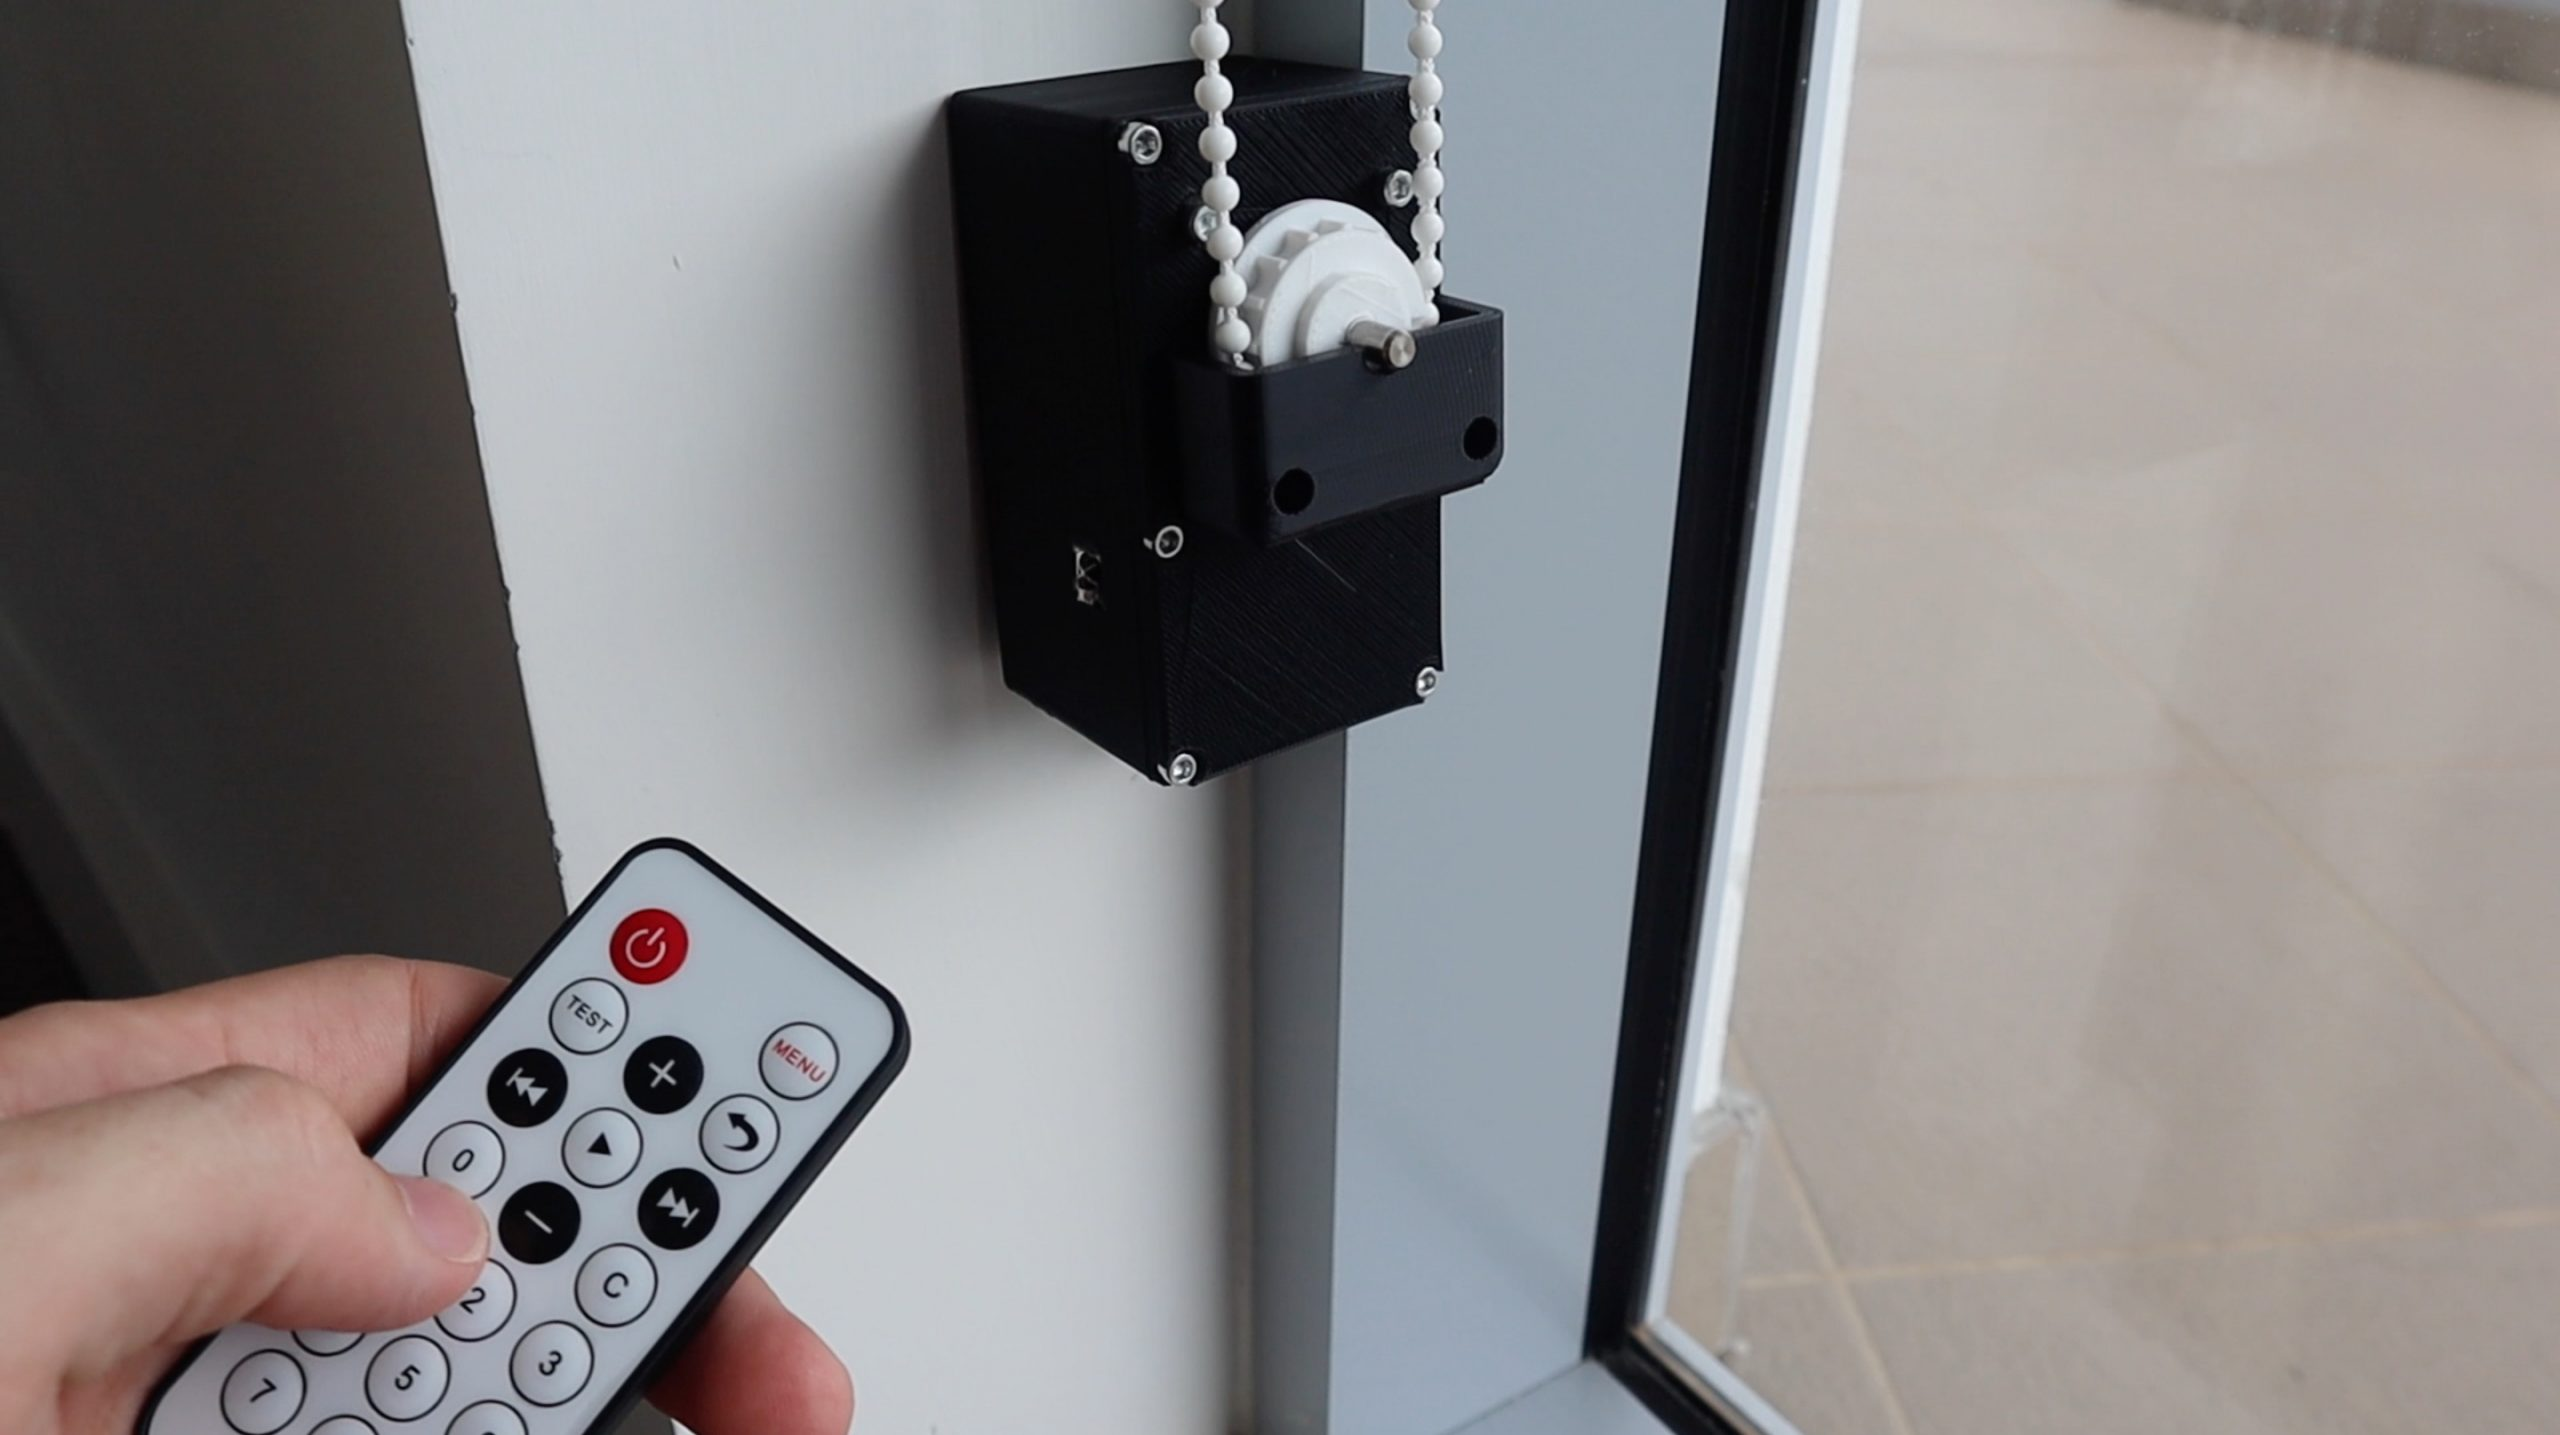 Remote Control for Automatic Blind Opener